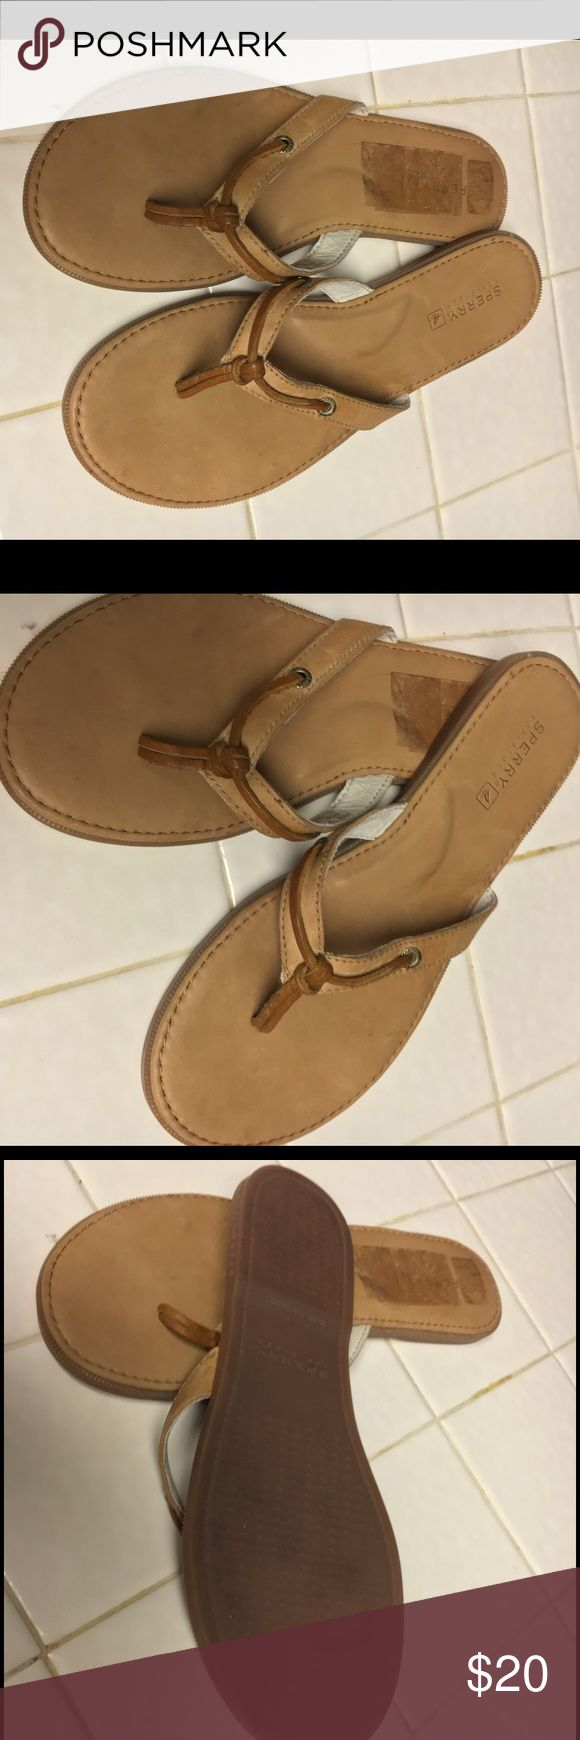 Sperry Leather Sandals Sperry Leather Sandals - Tan - Size 7 - New Only flaw is the sales sticker imprint on right shoe. Sperry Shoes Sandals